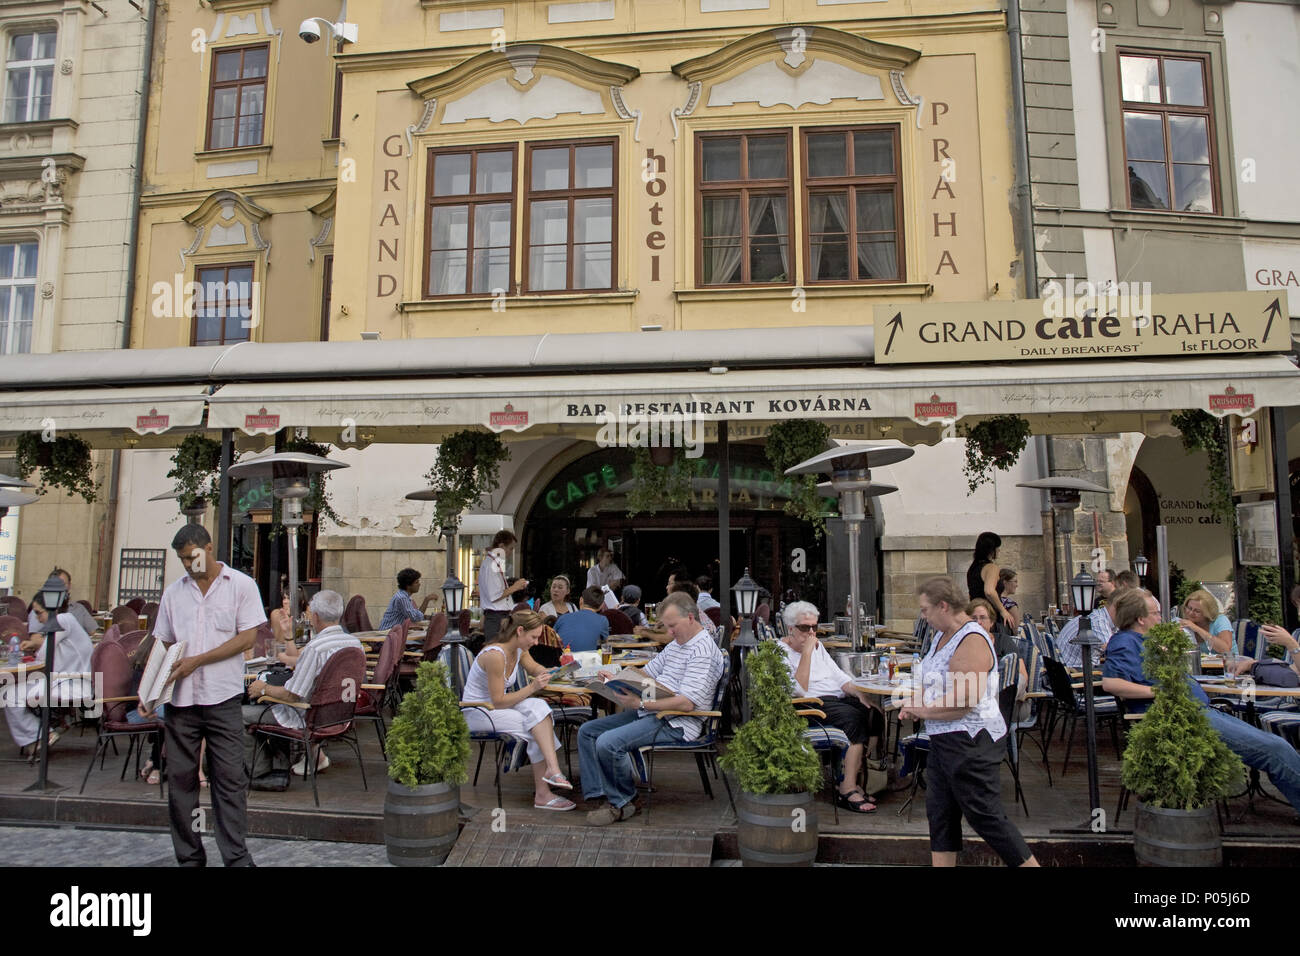 Cafe At The Grand Hotel Of Praha Prague In The Old City In Prague Czech Republic Stock Photo Alamy